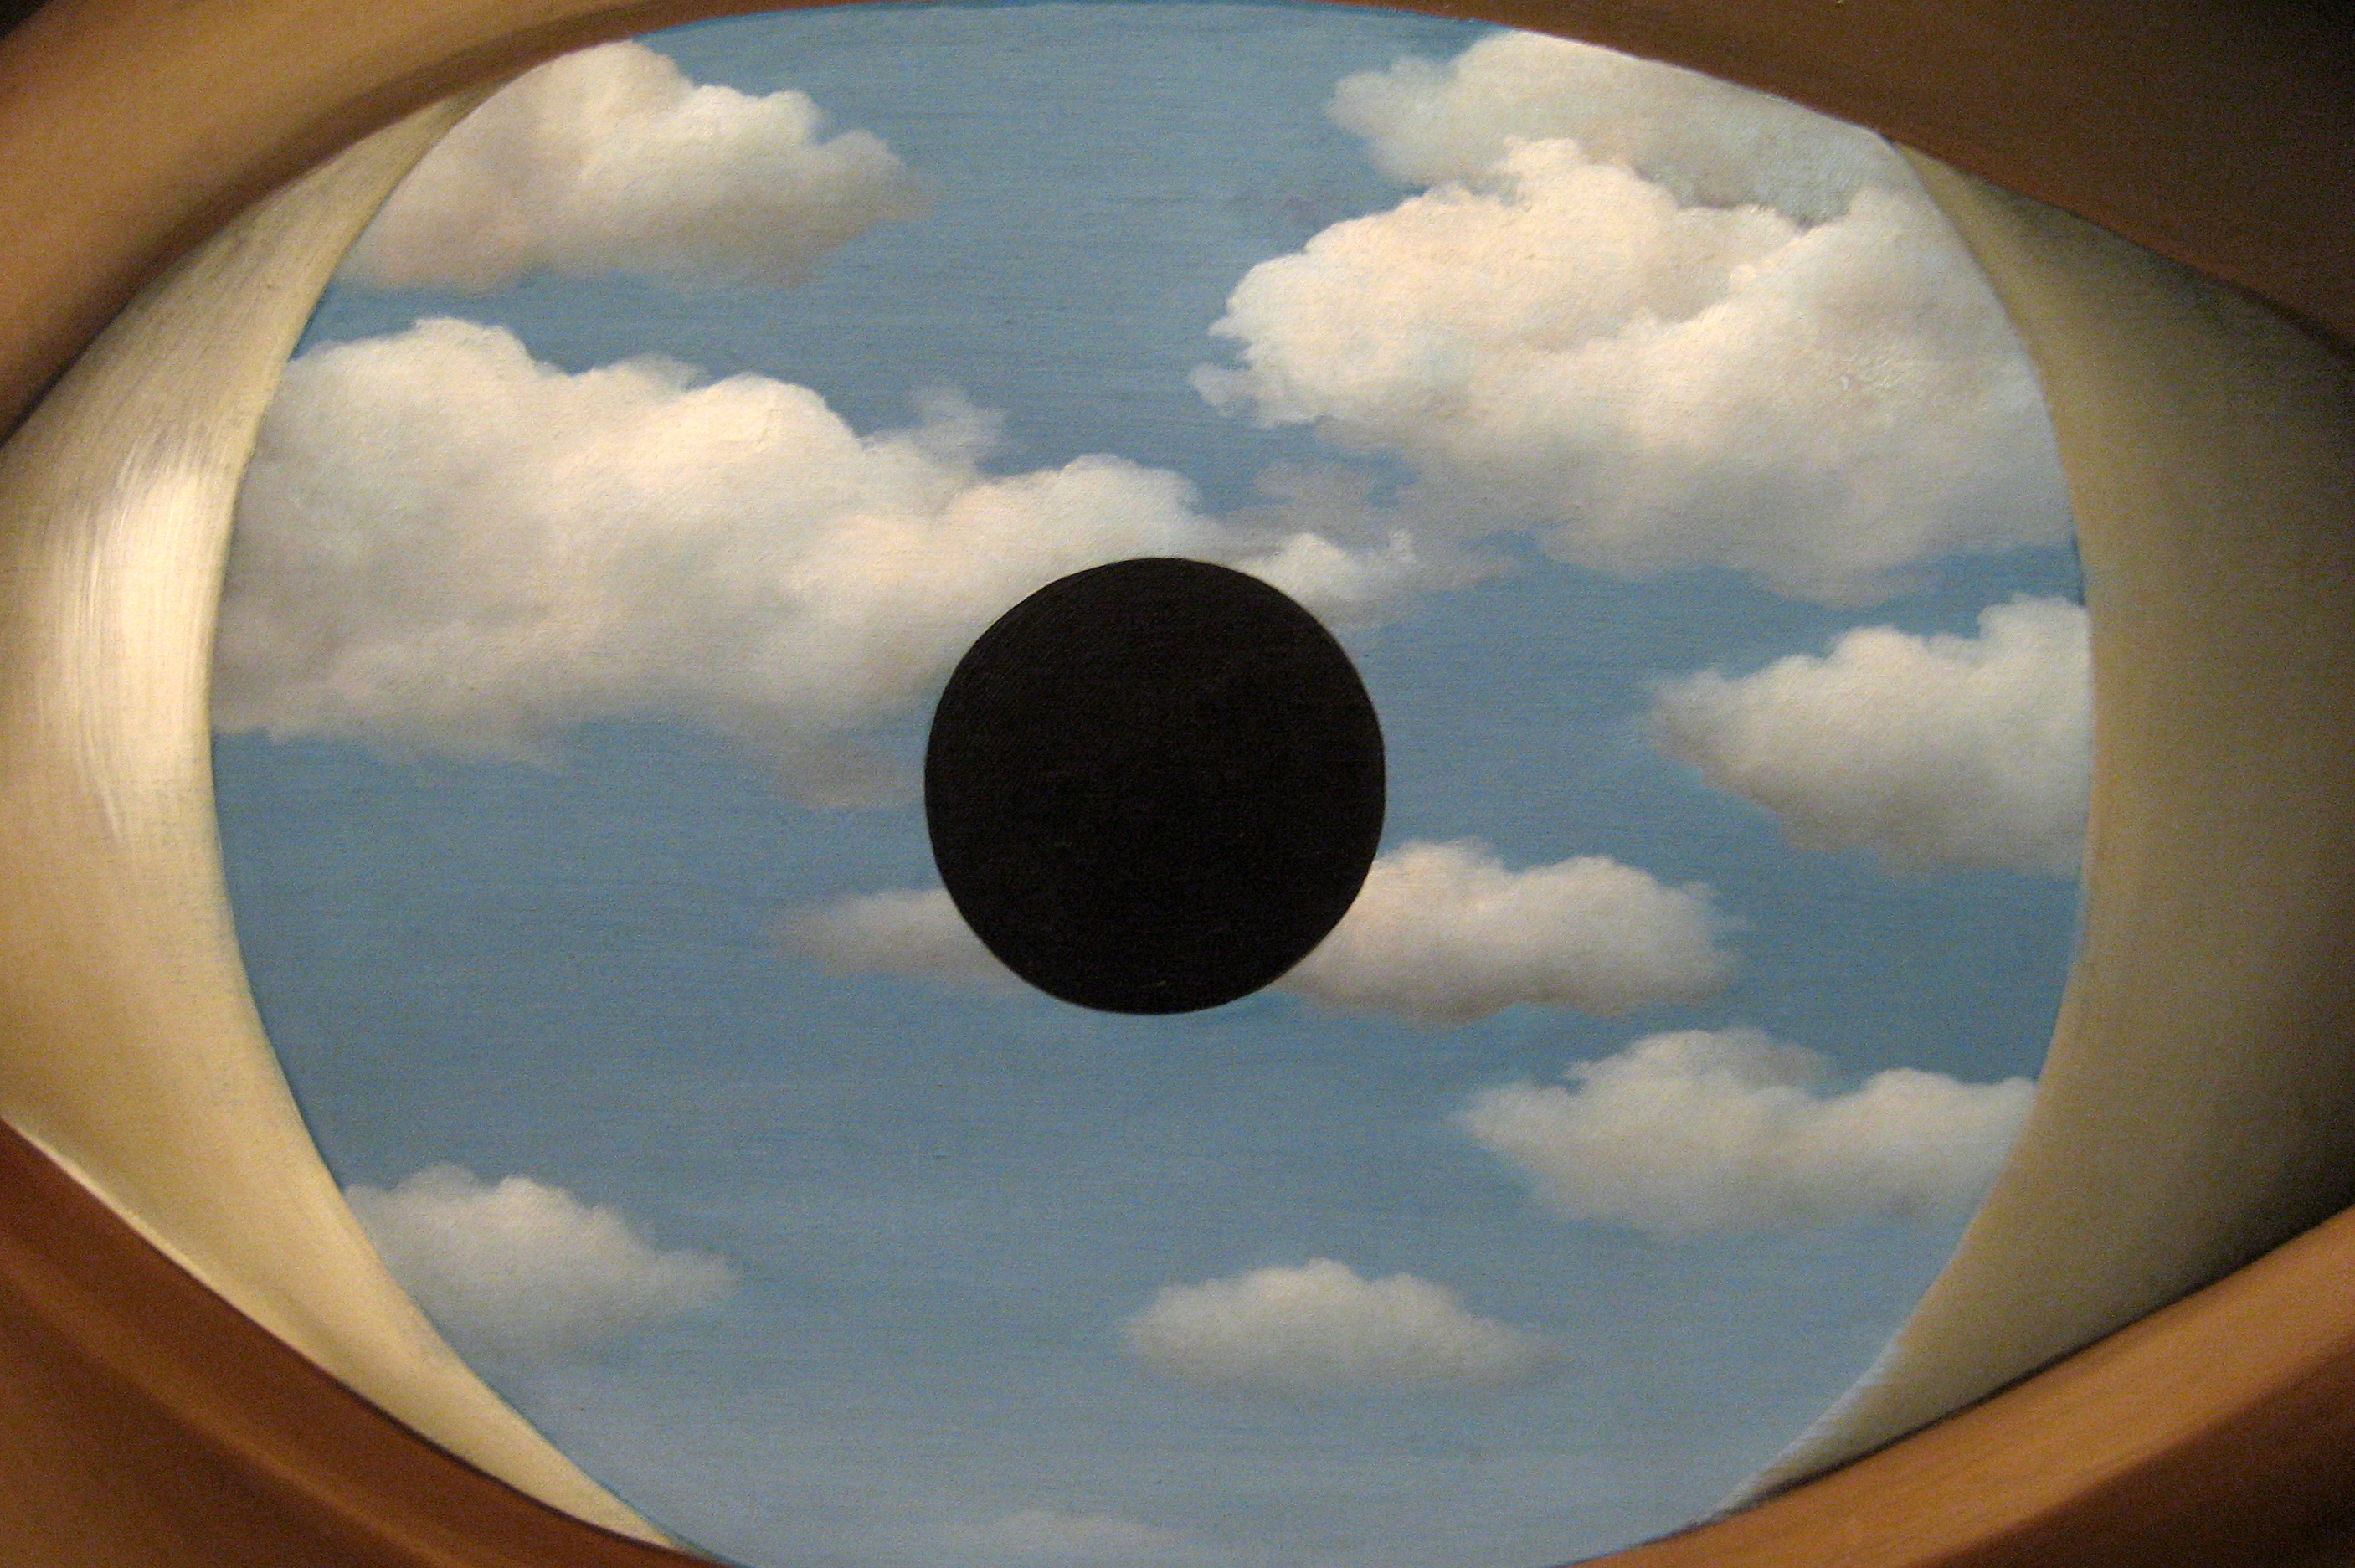 rene-magritte-clouds-eyes-911765-2813x1873